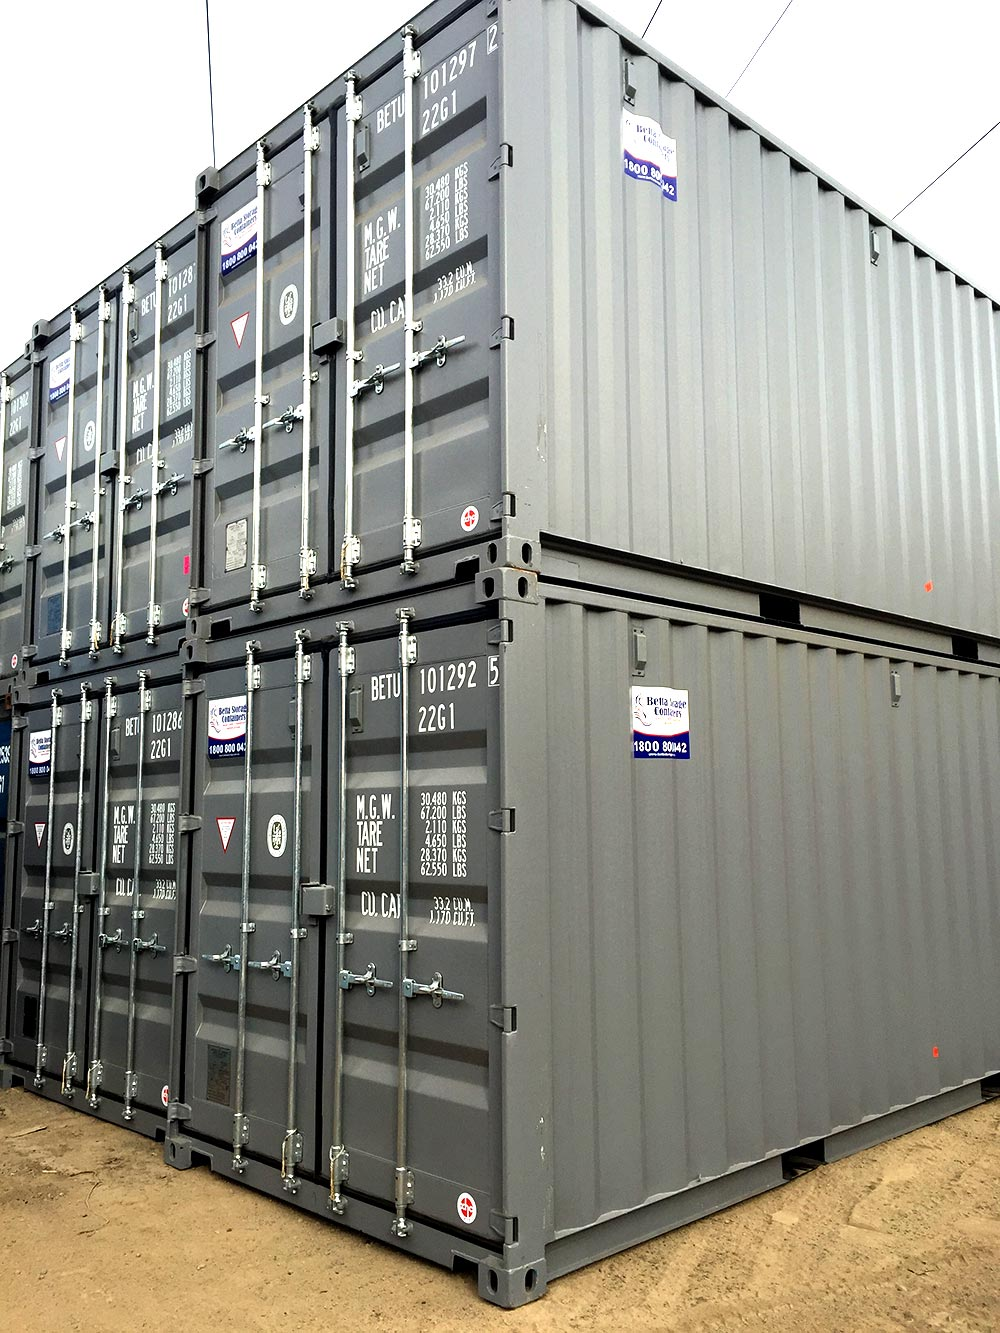 Hunter Containers is a family business